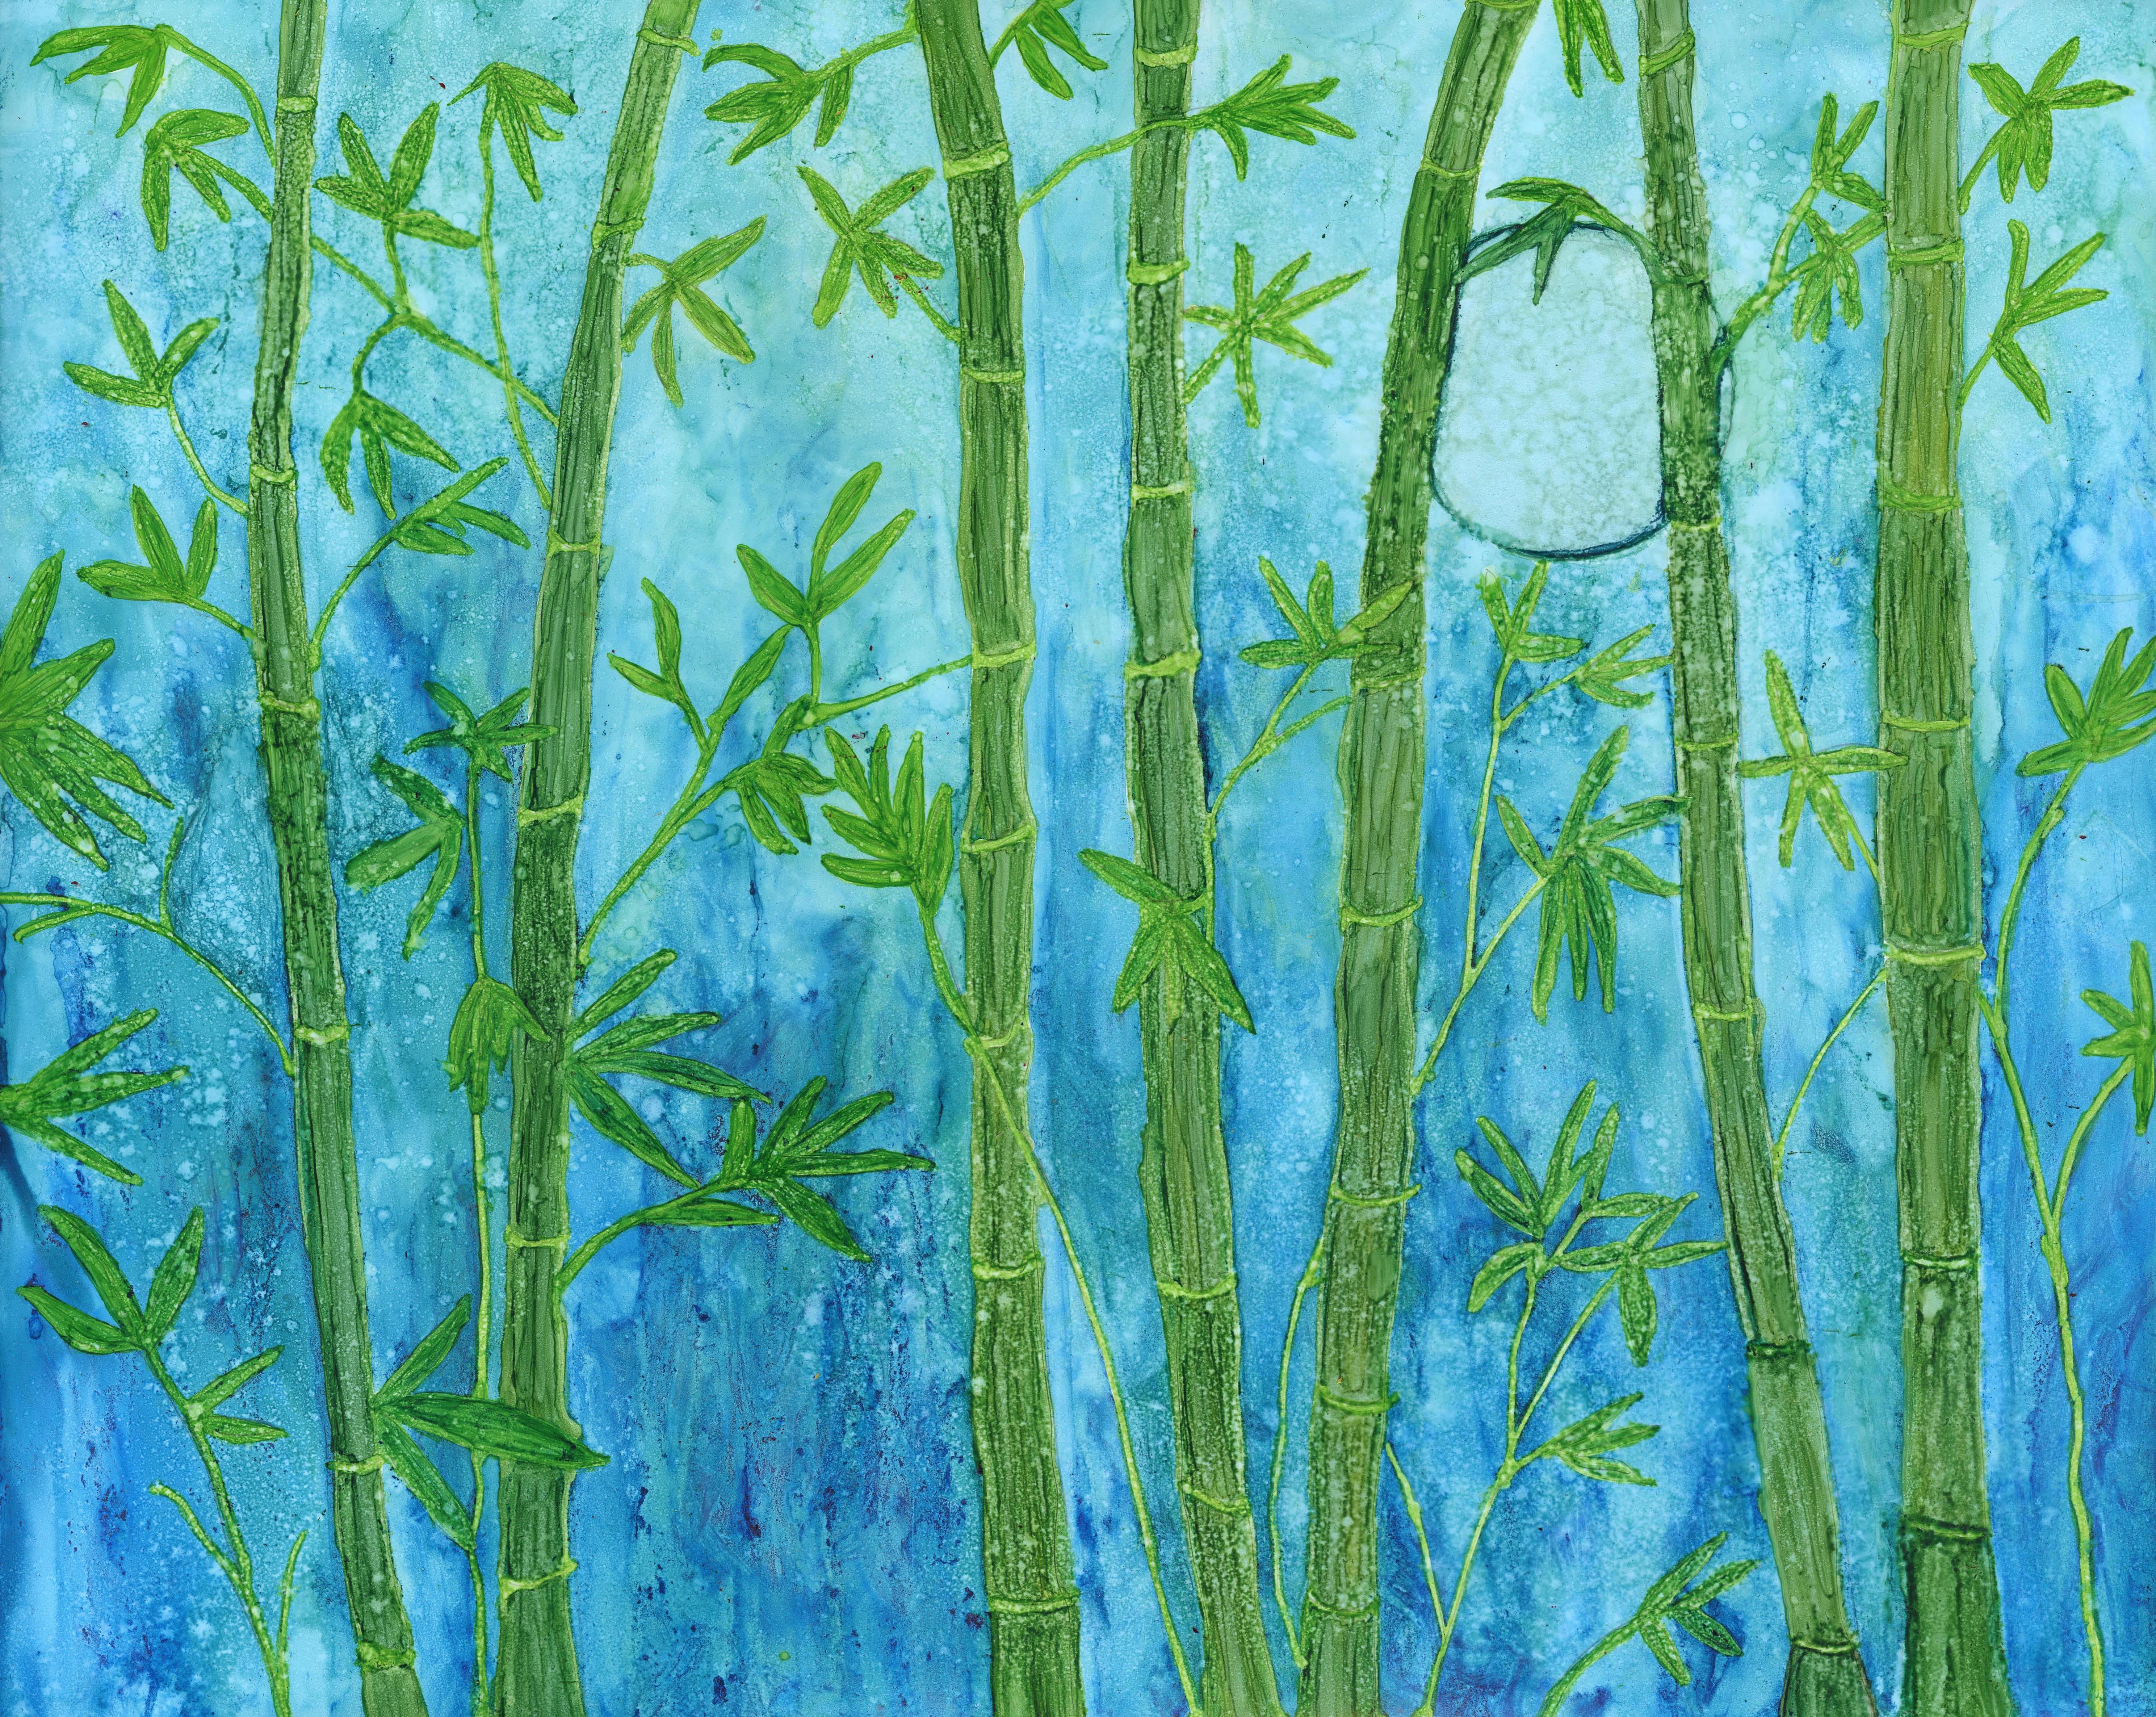 bamboo-moon-alcohol-ink-16-x-20-300